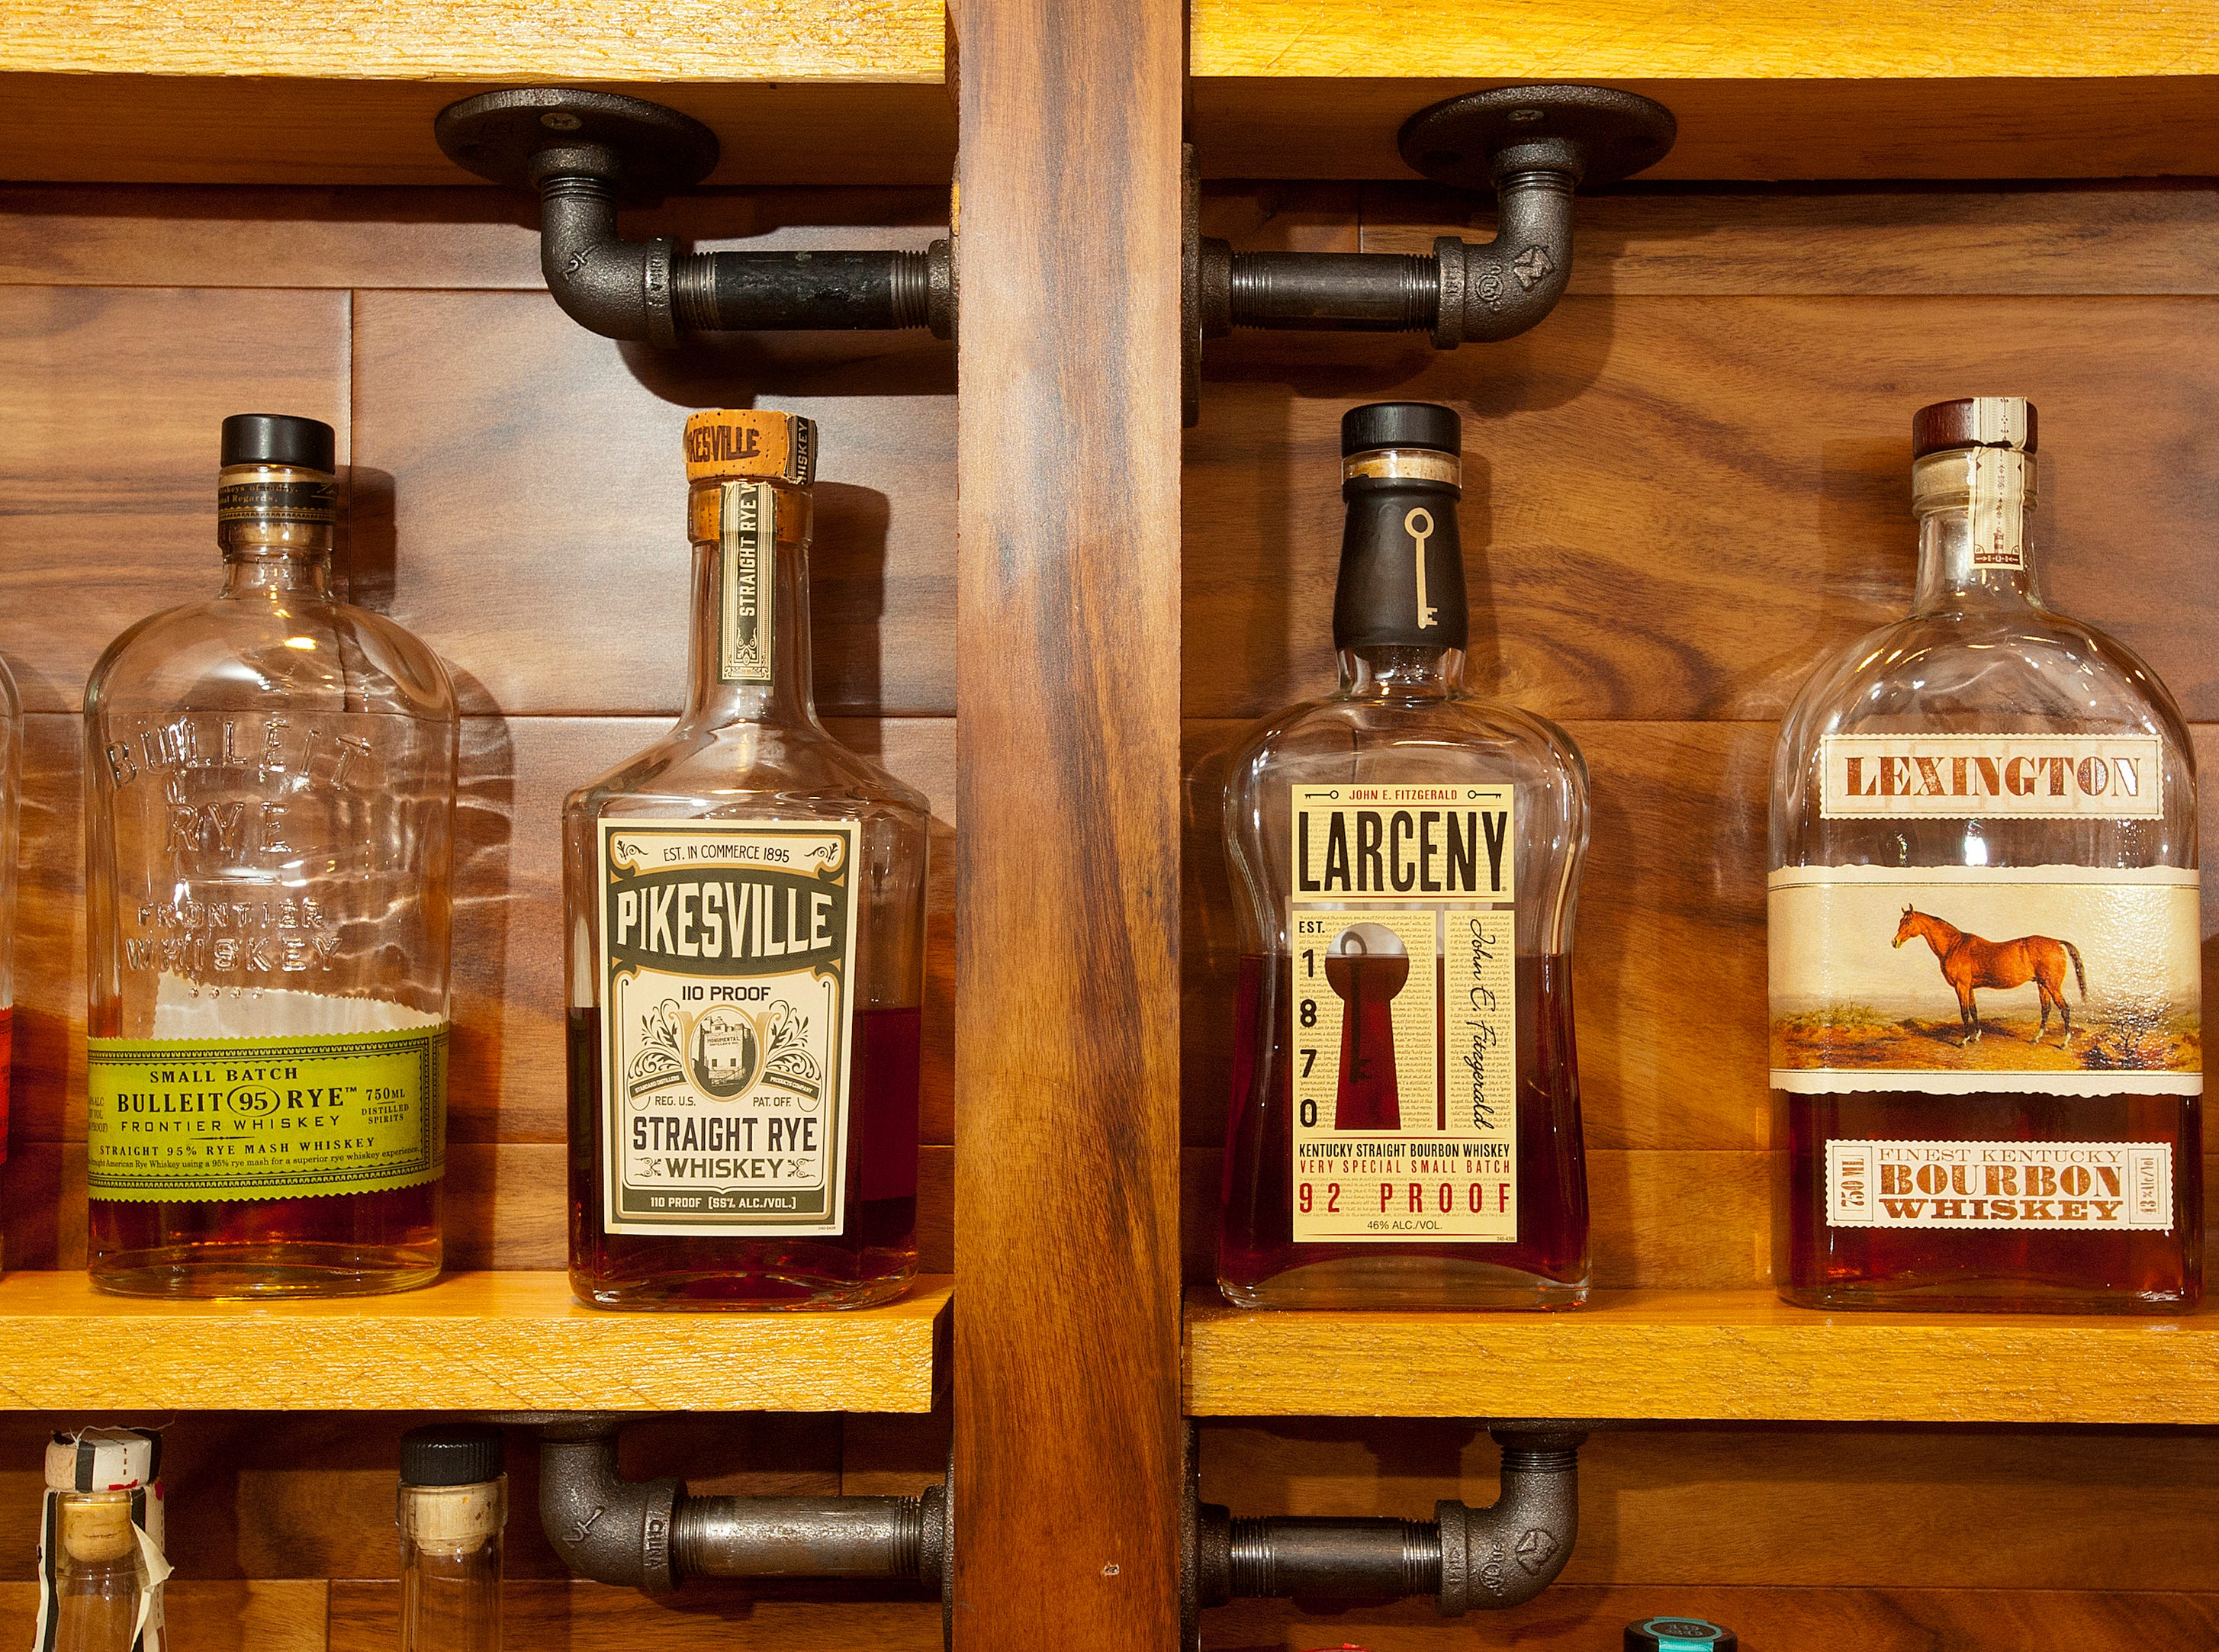 The Cliffords collect bourbon bottles on display in the bourbon bar in their basement, built by Cliff Clifford using pipe fittings as shelf supports. A bit of Larceny can be seen between the two bottles of whiskey, Pikesville and Lexington, named after Kentucky cities.